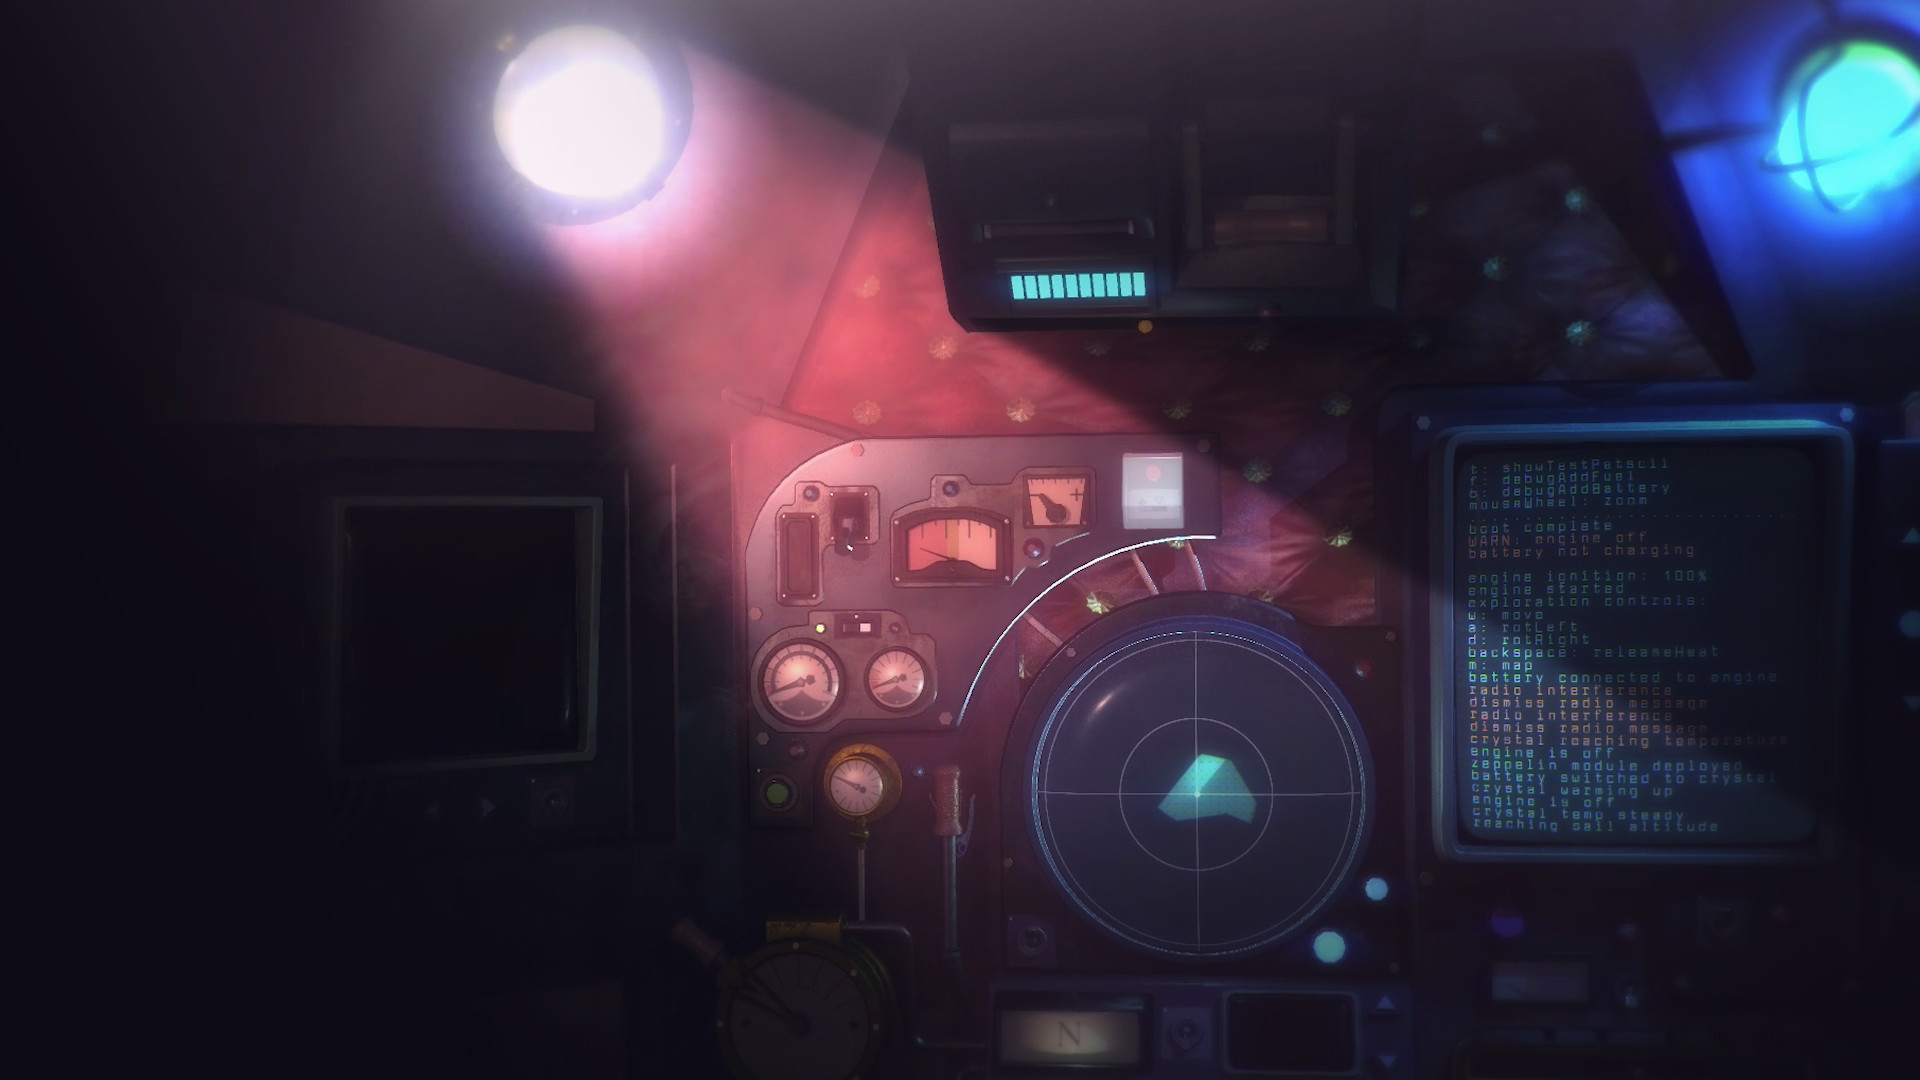 Nauticrawl is an enigmatic adventure set in the innards of an alien vehicle